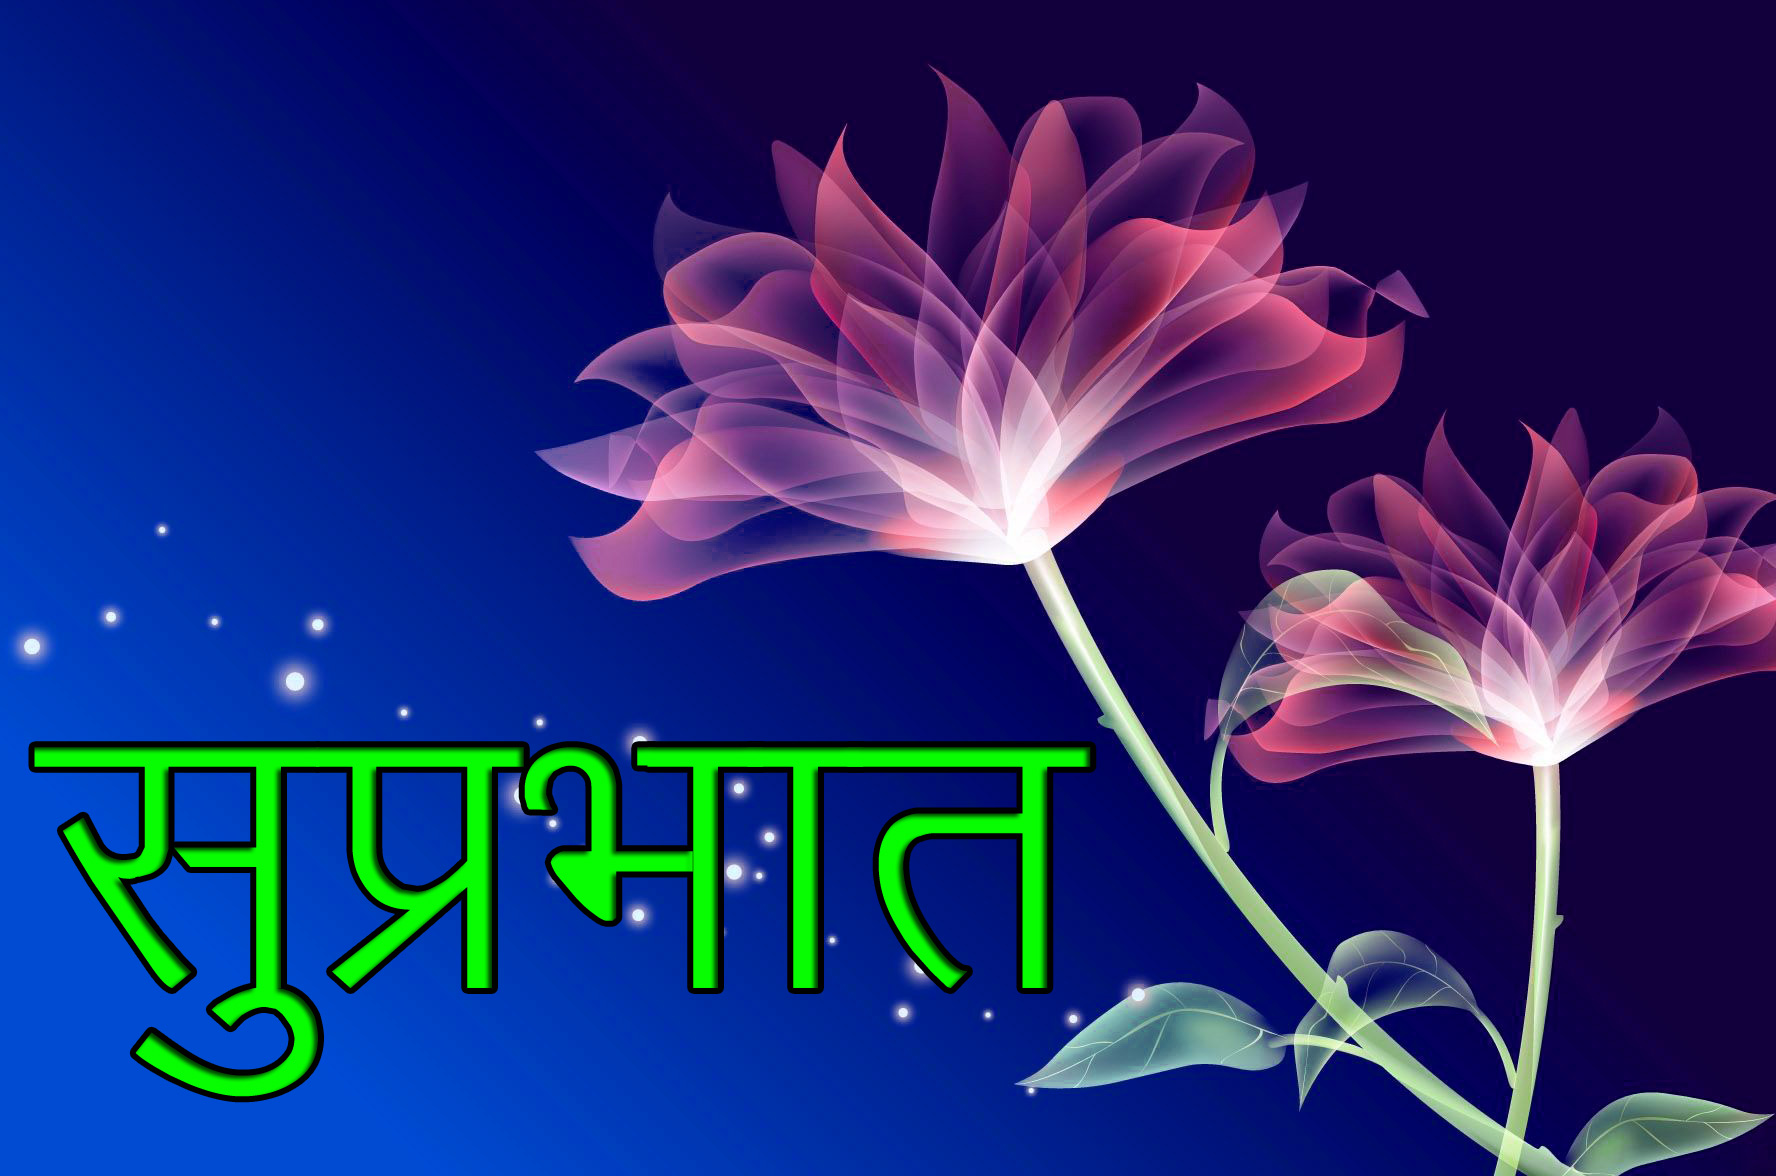 Latest-Suprabhat-Images-In-Hindi-22